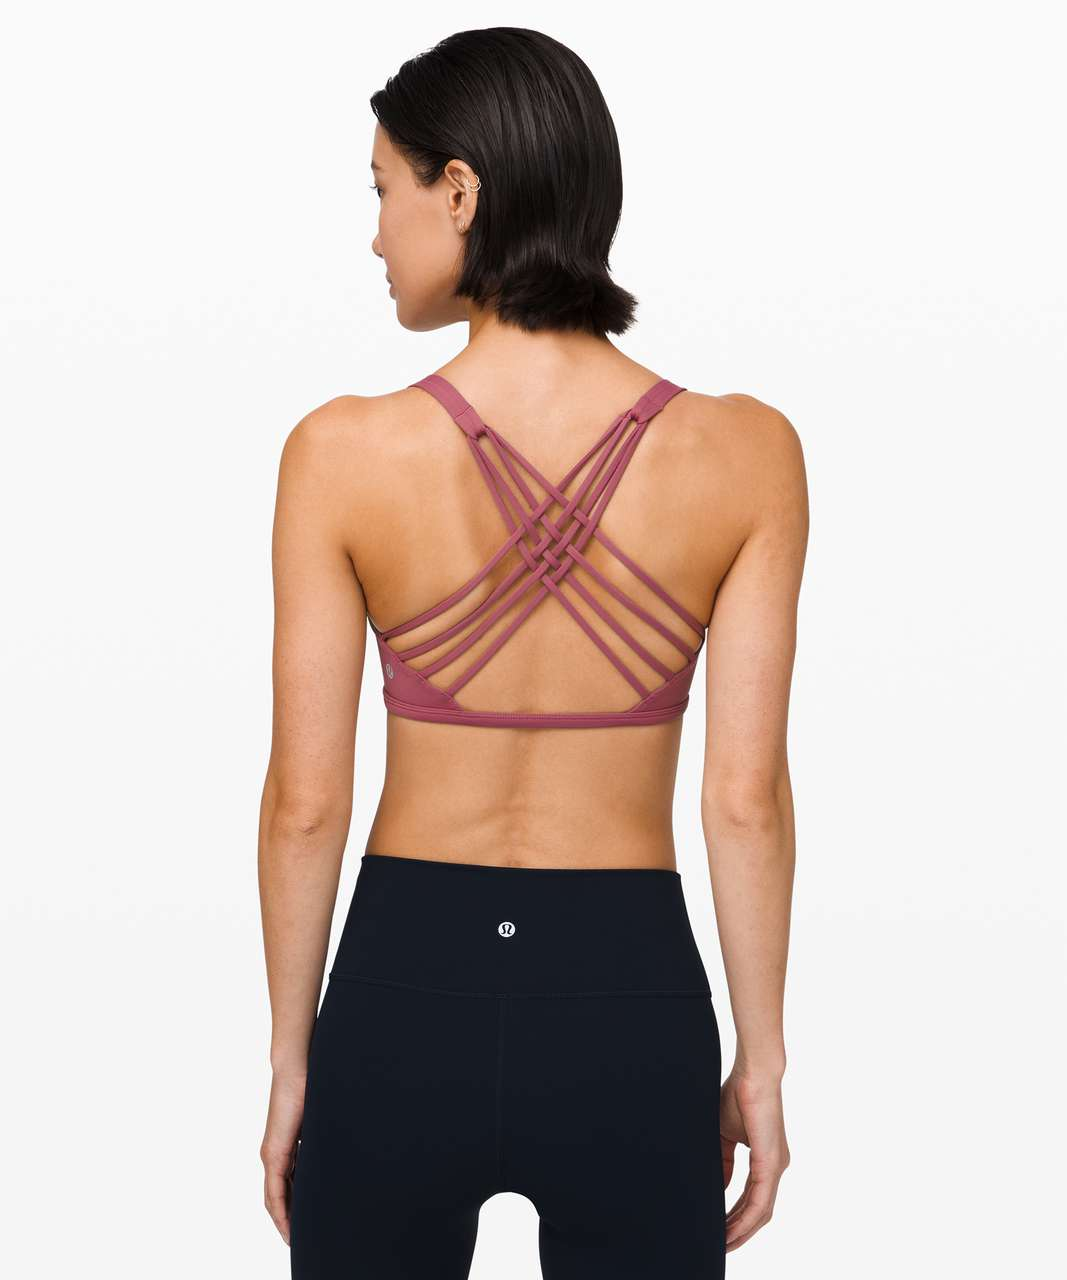 Lululemon Free To Be Bra (Wild) - Moss Rose